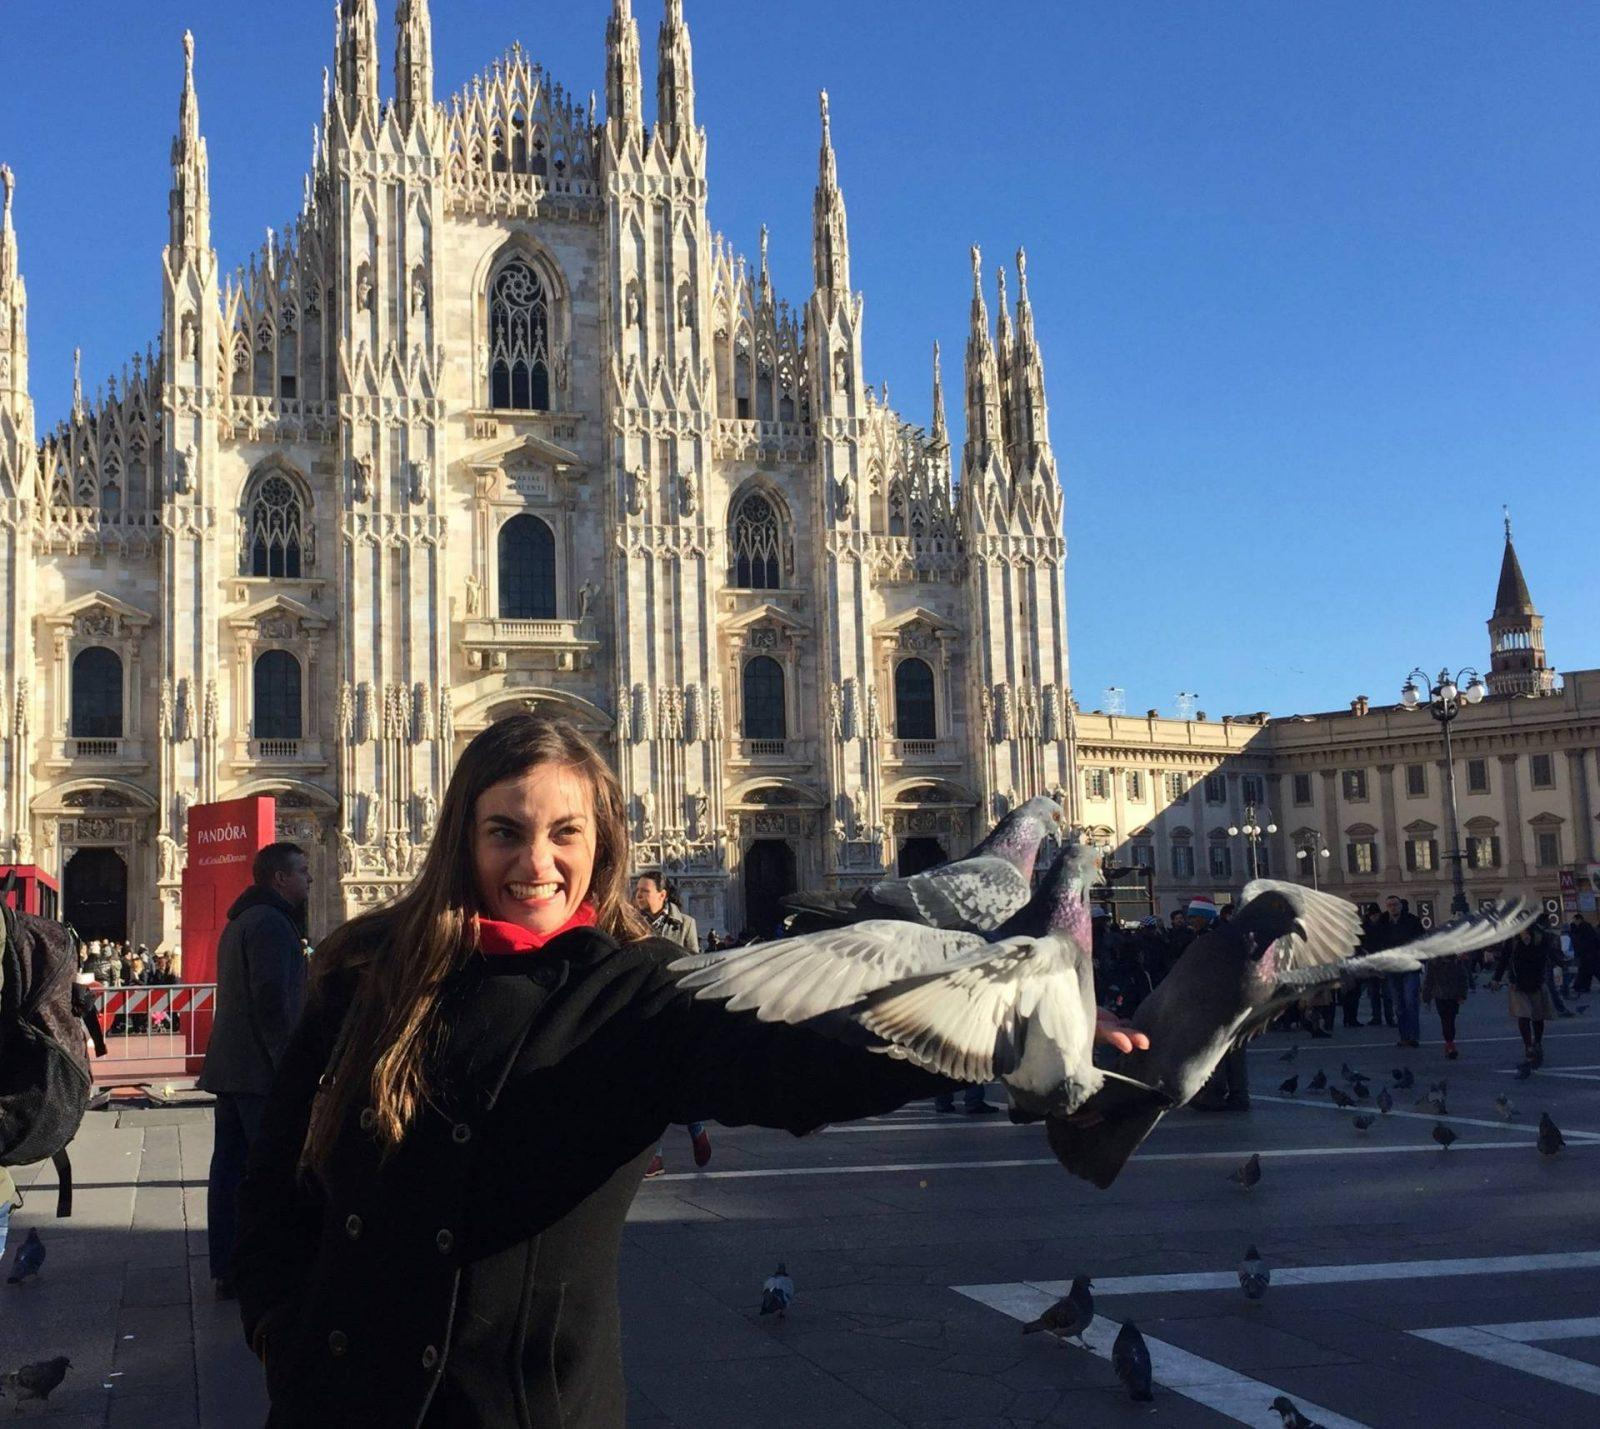 Duomo and Da Vinci: How to Spend 24 Hours in Milan, Italy